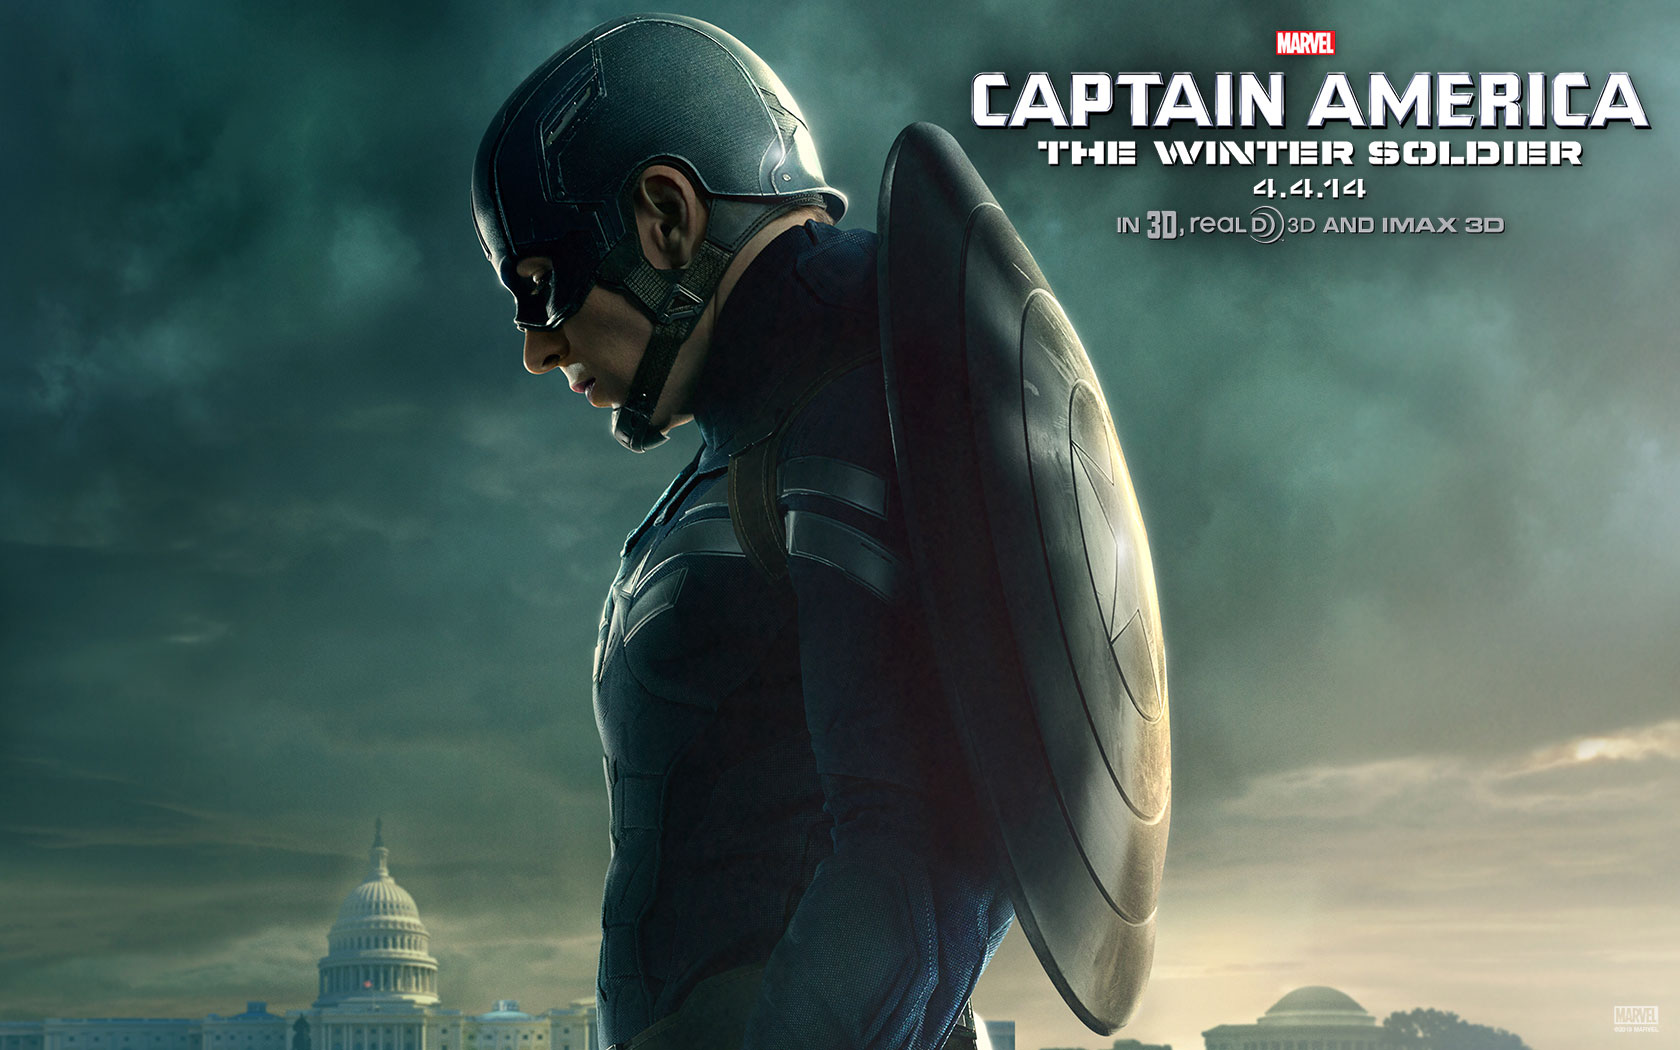 CAPTAIN AMERICA THE WINTER SOLDIER Wallpapers and Desktop Backgrounds 1680x1050